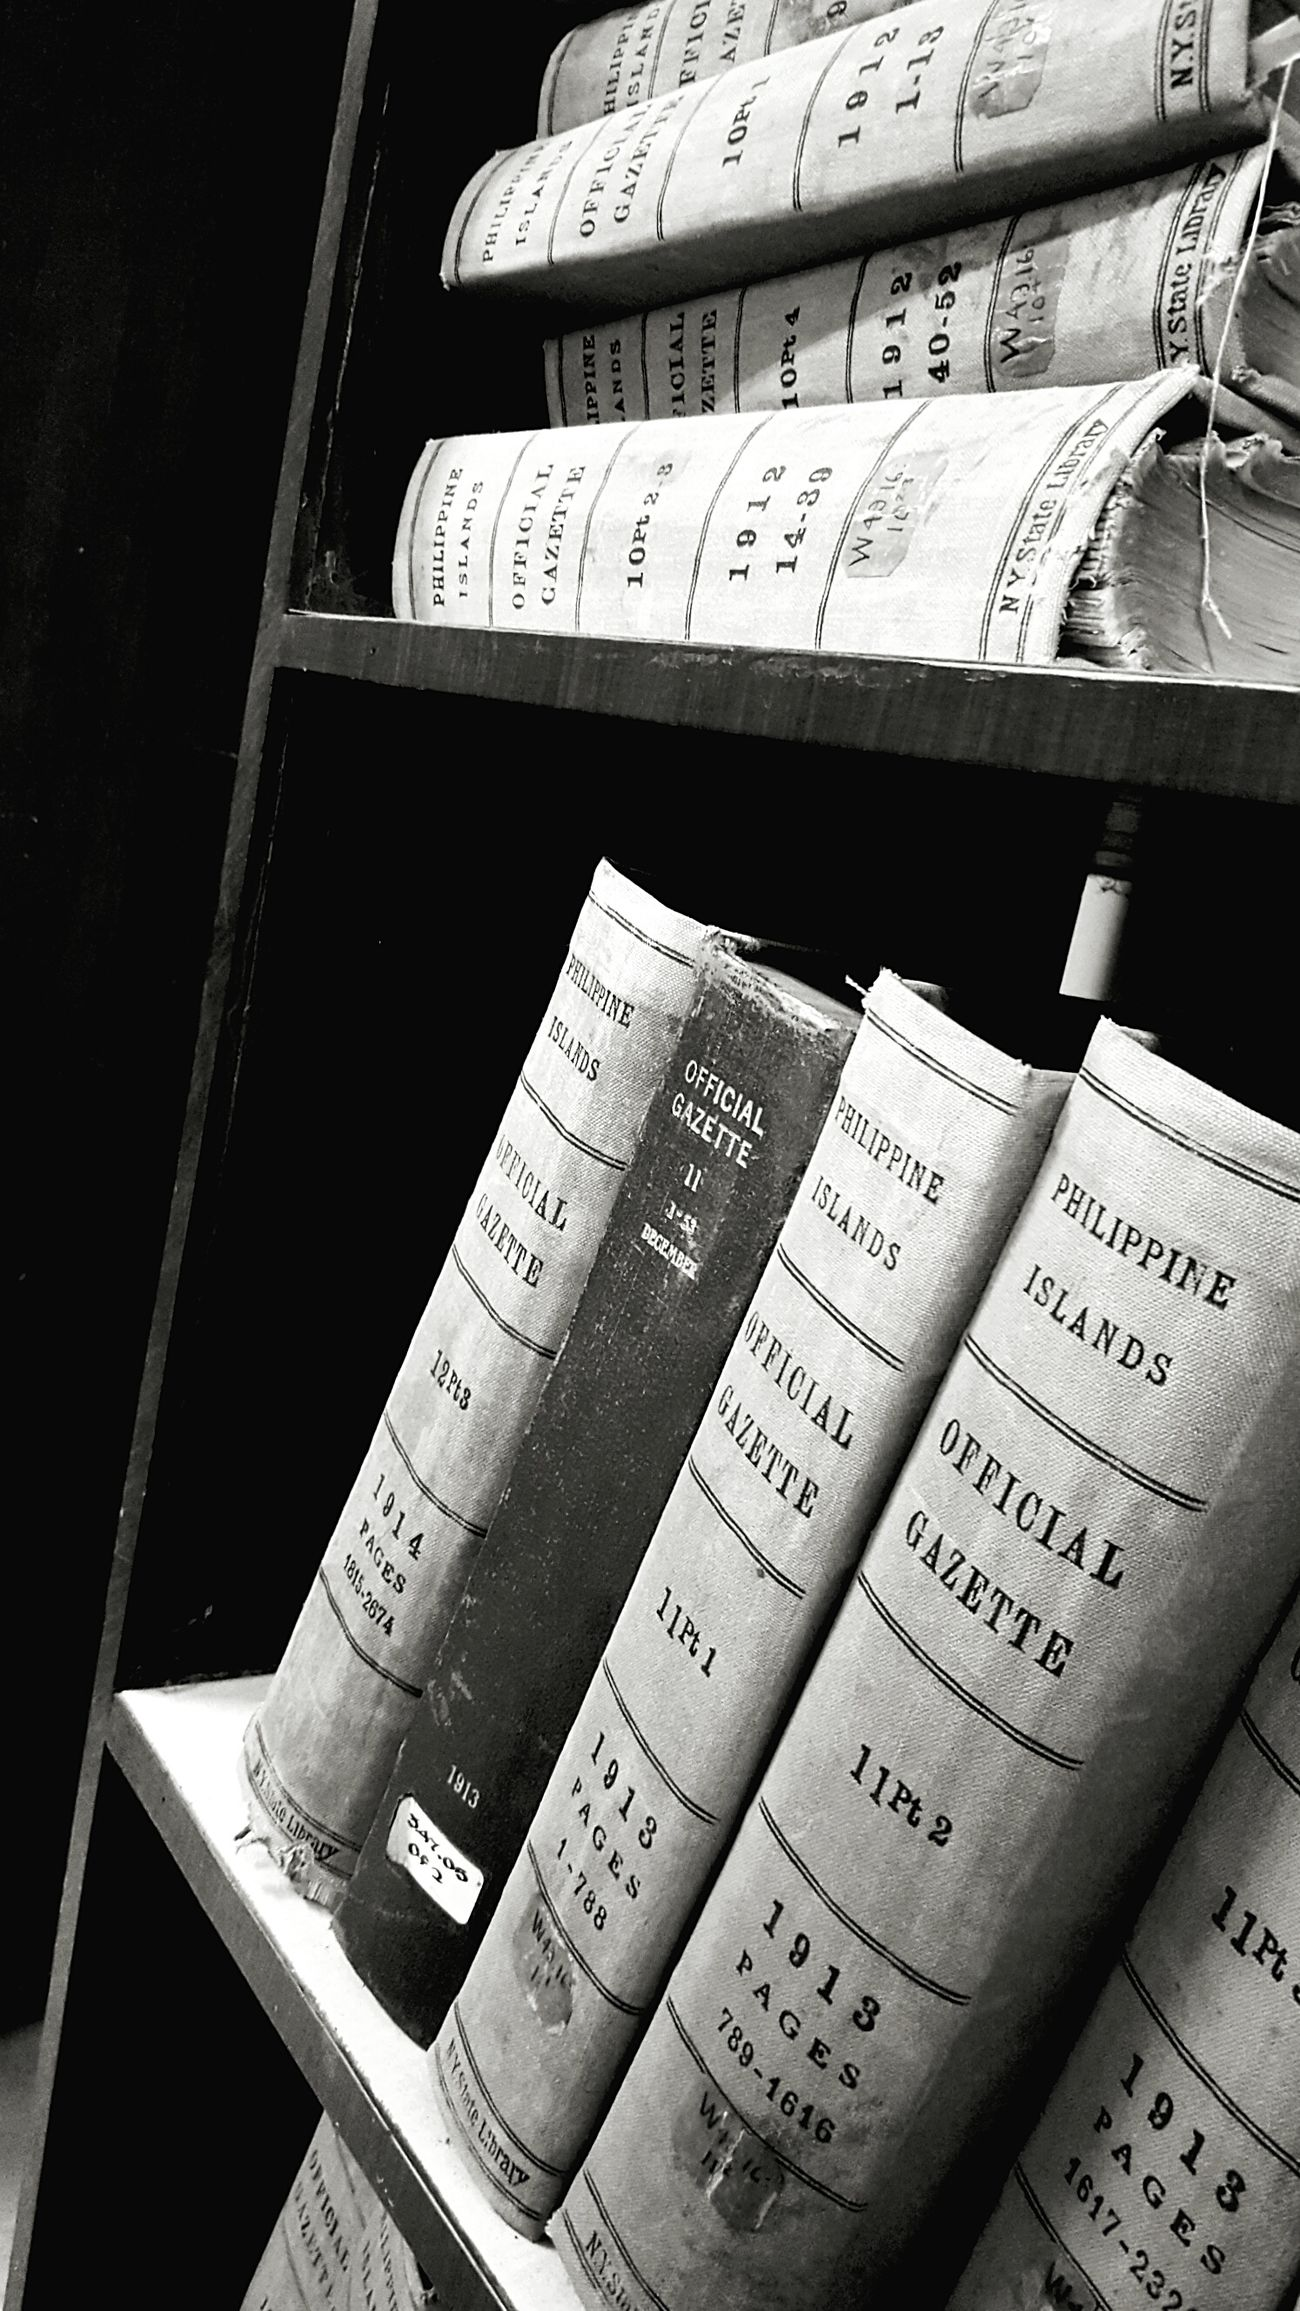 Books and dust No People Variation Archival Indoors  Large Group Of Objects Box - Container Close-up Day Bookstagram Books Lawbooks Bookphotography Old Monochrome Photography Monochrome Booklover